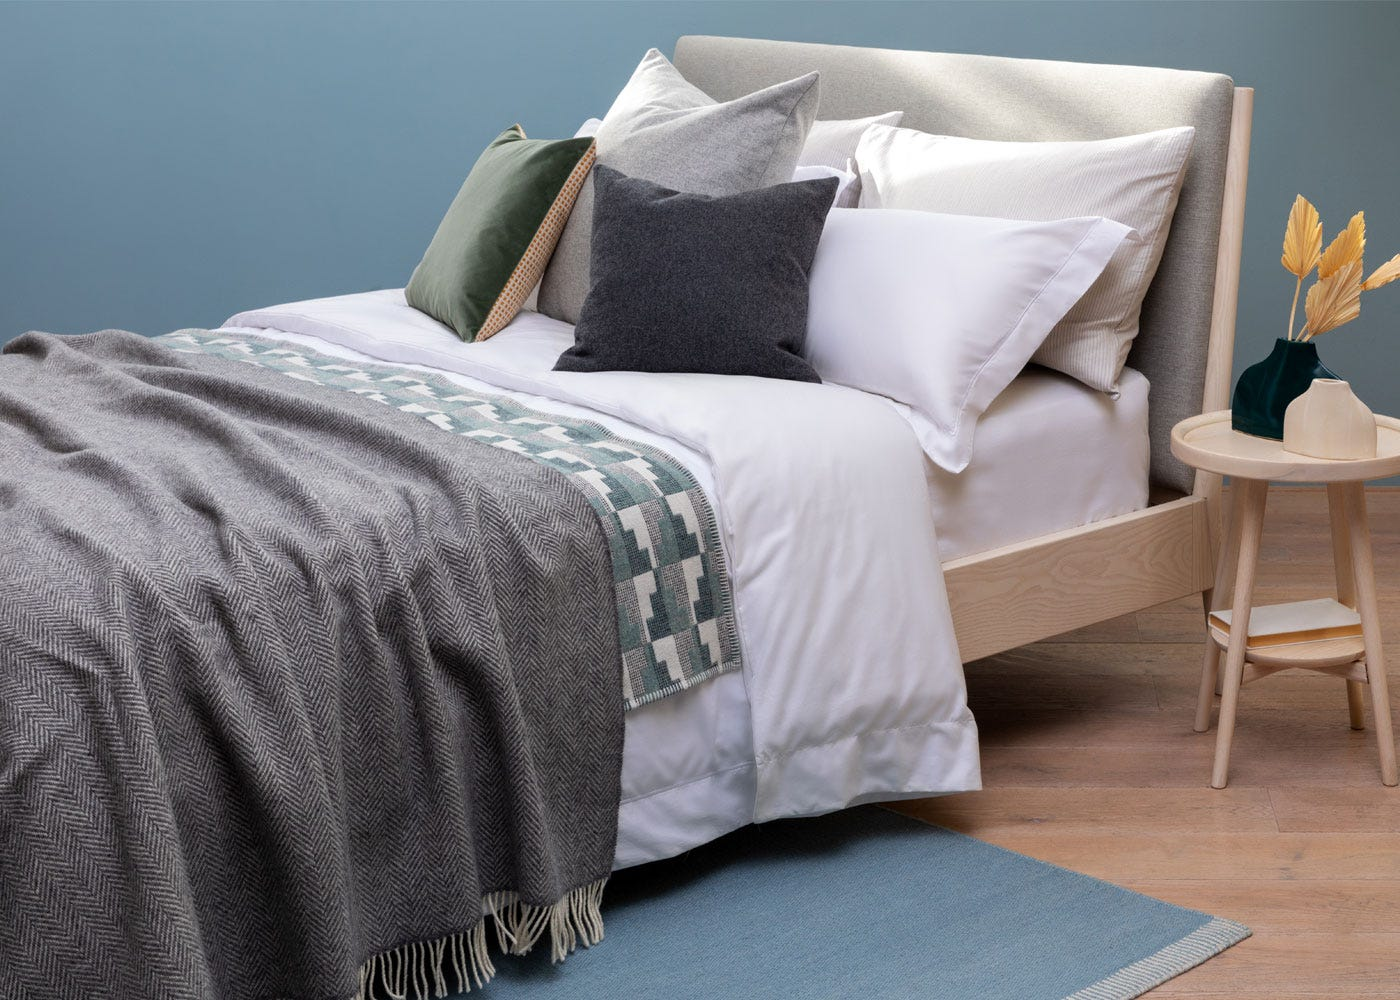 Double bed linen with the Oxford pillowcases